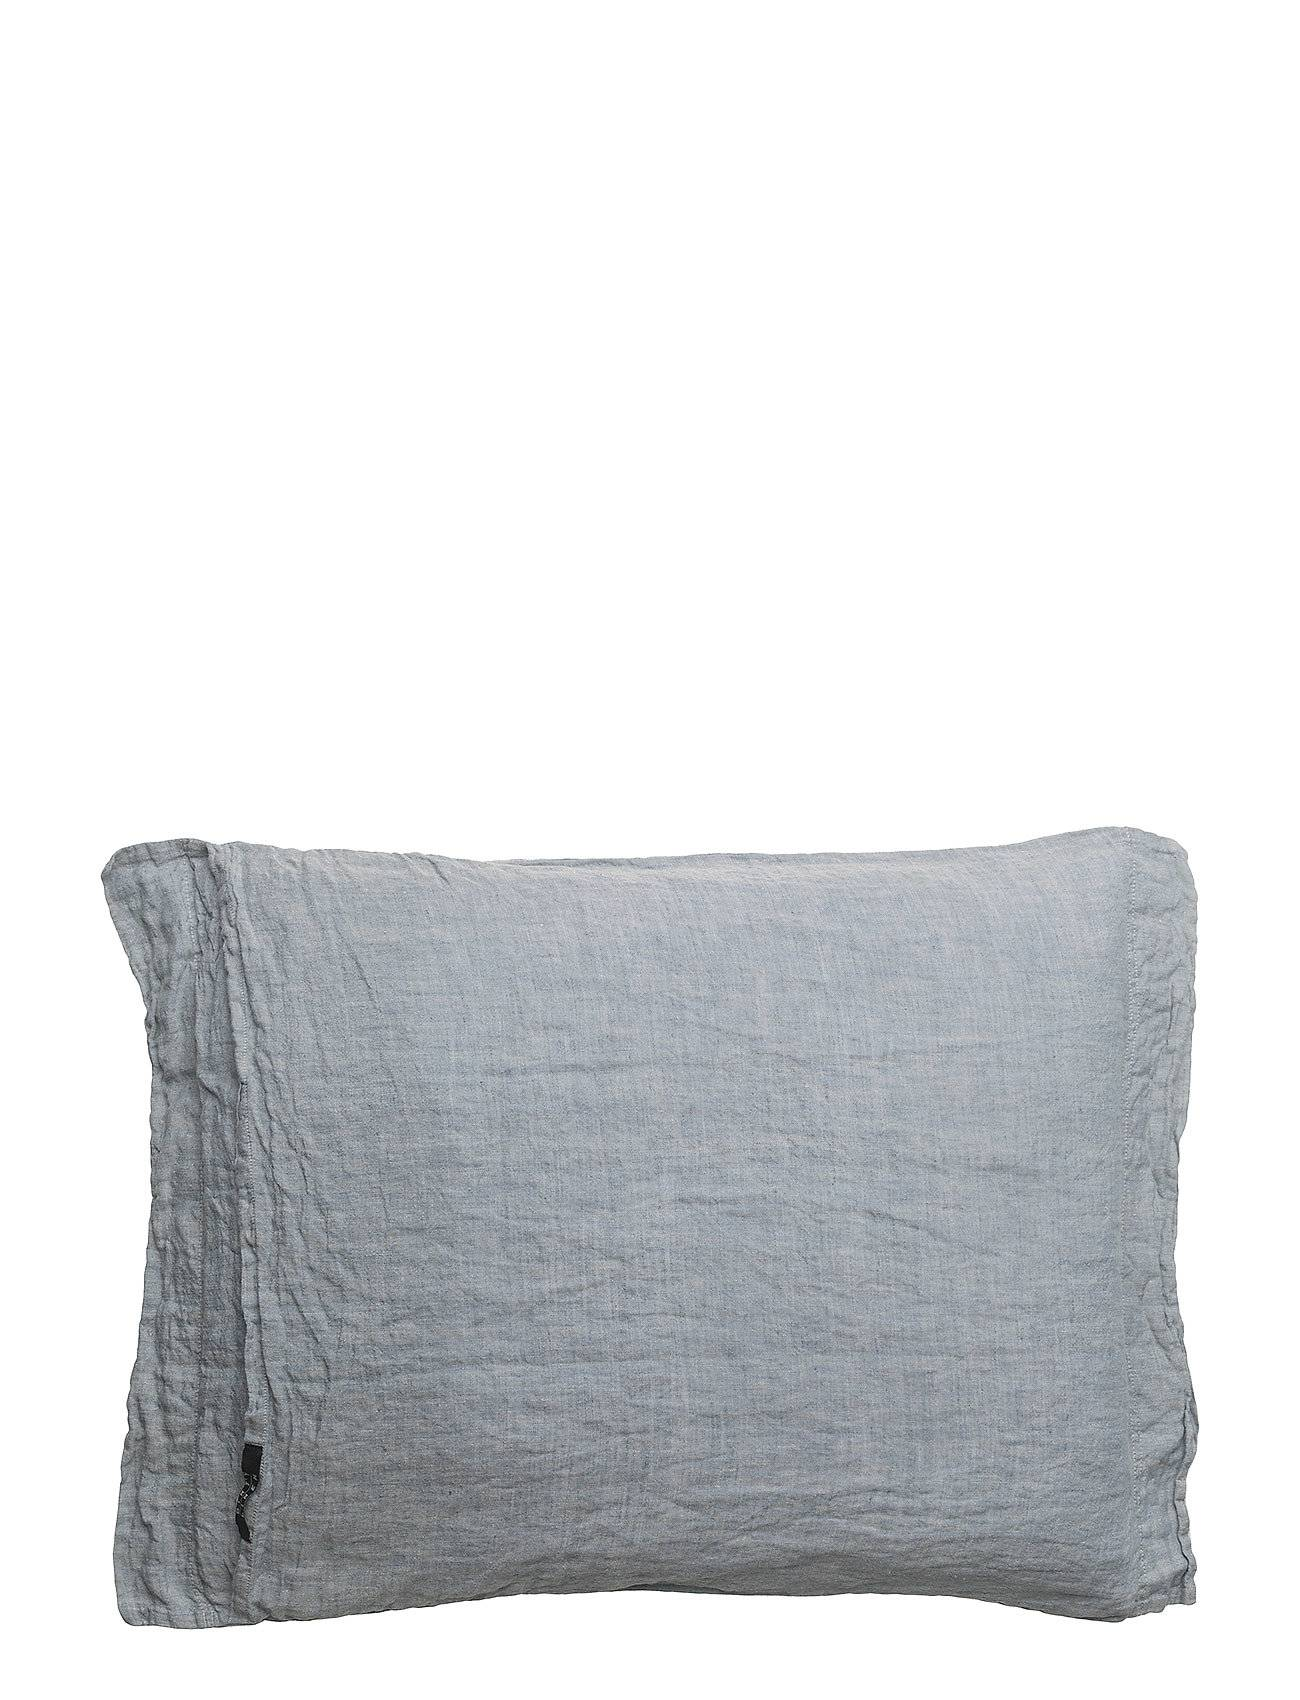 Dirty Linen Animeaux Head Pillow Case